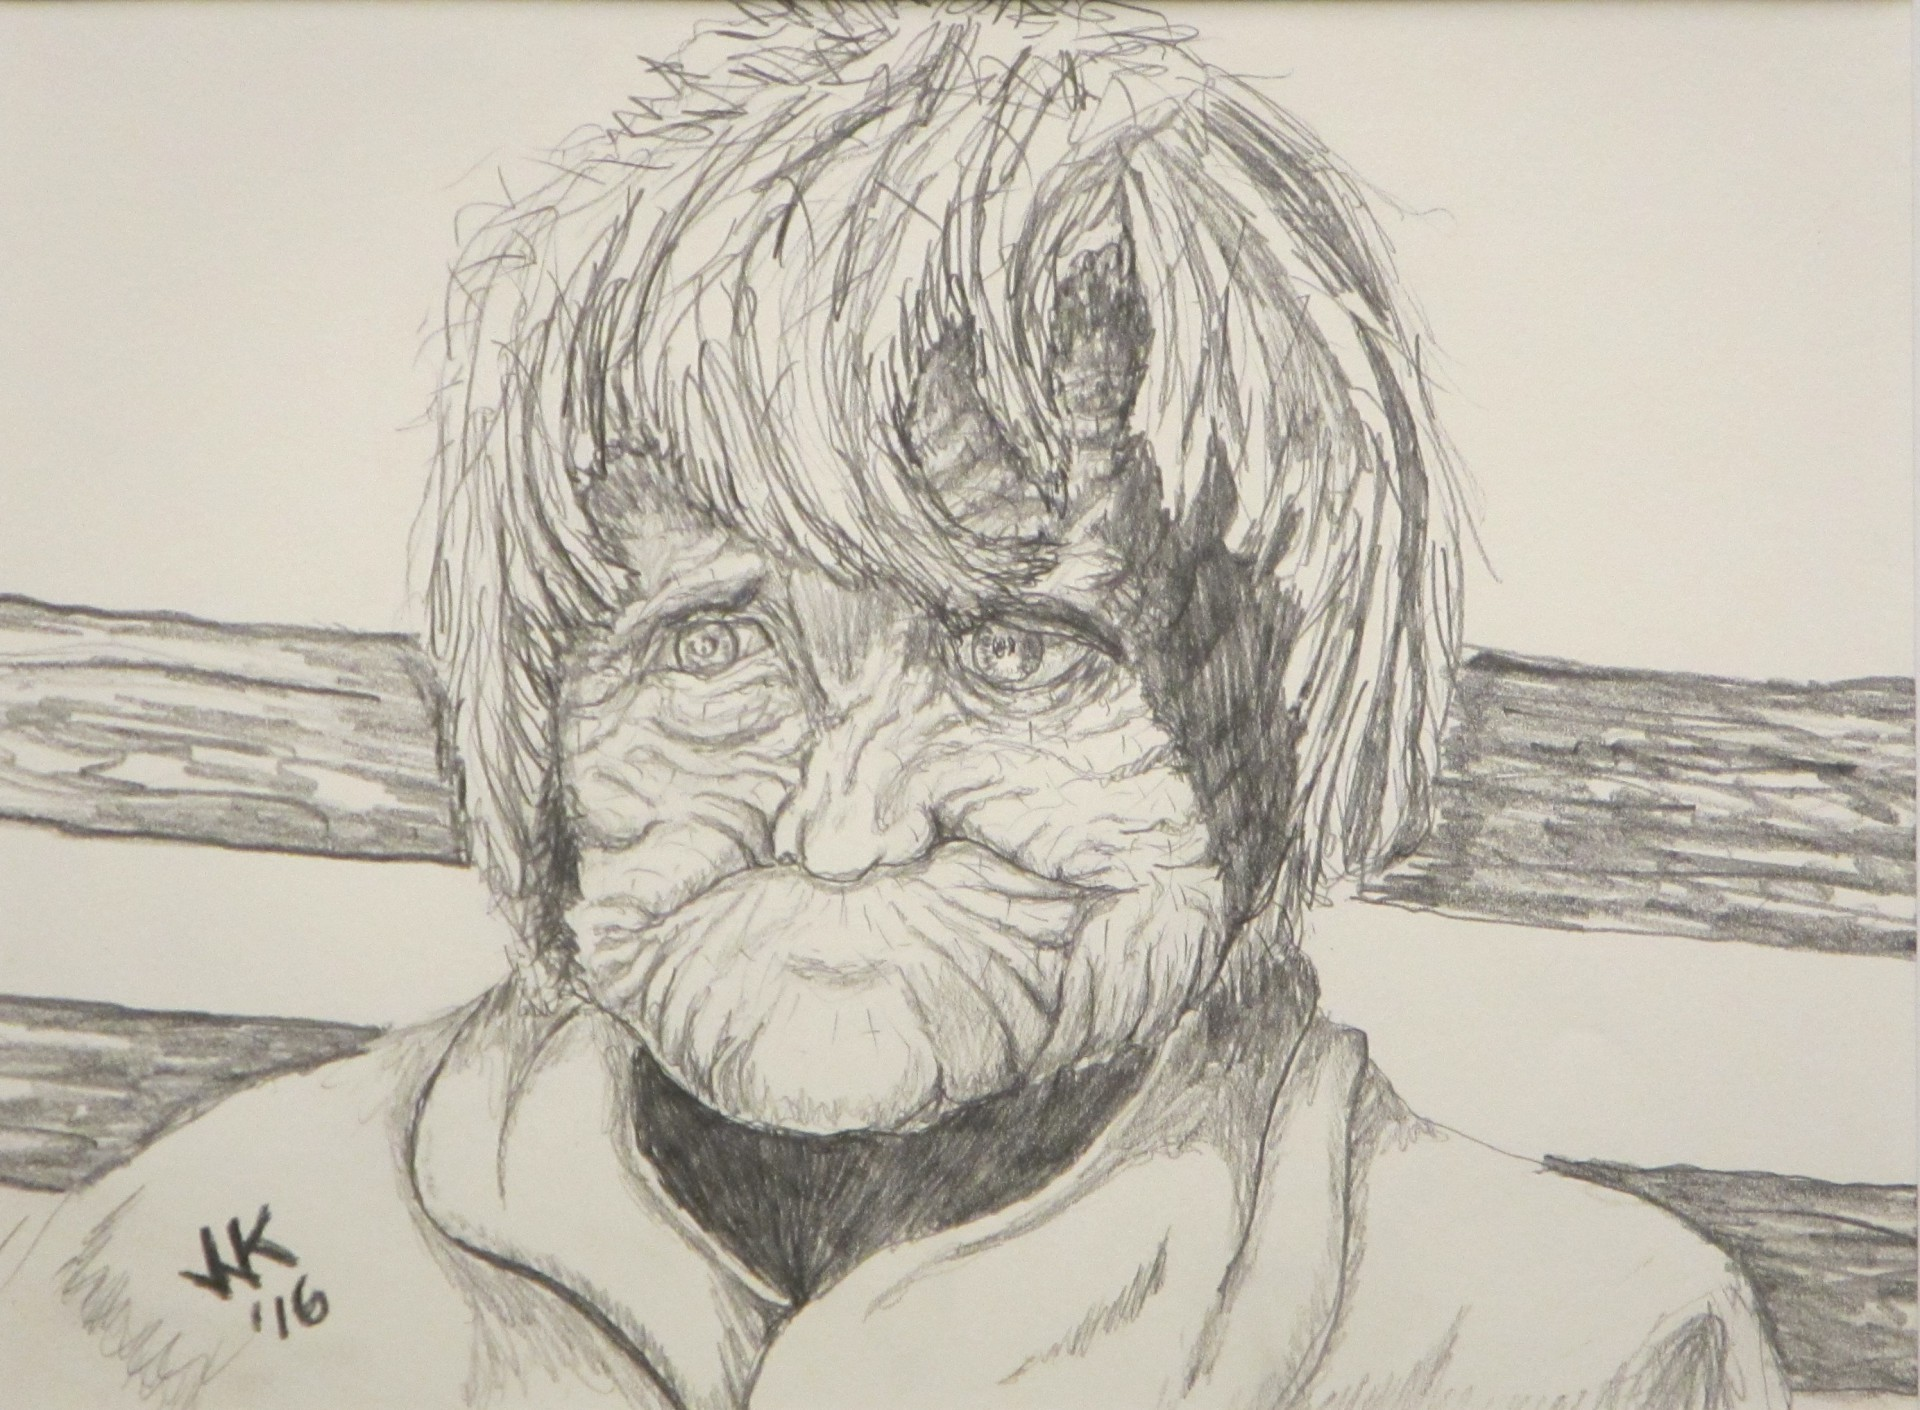 A homeless old woman.